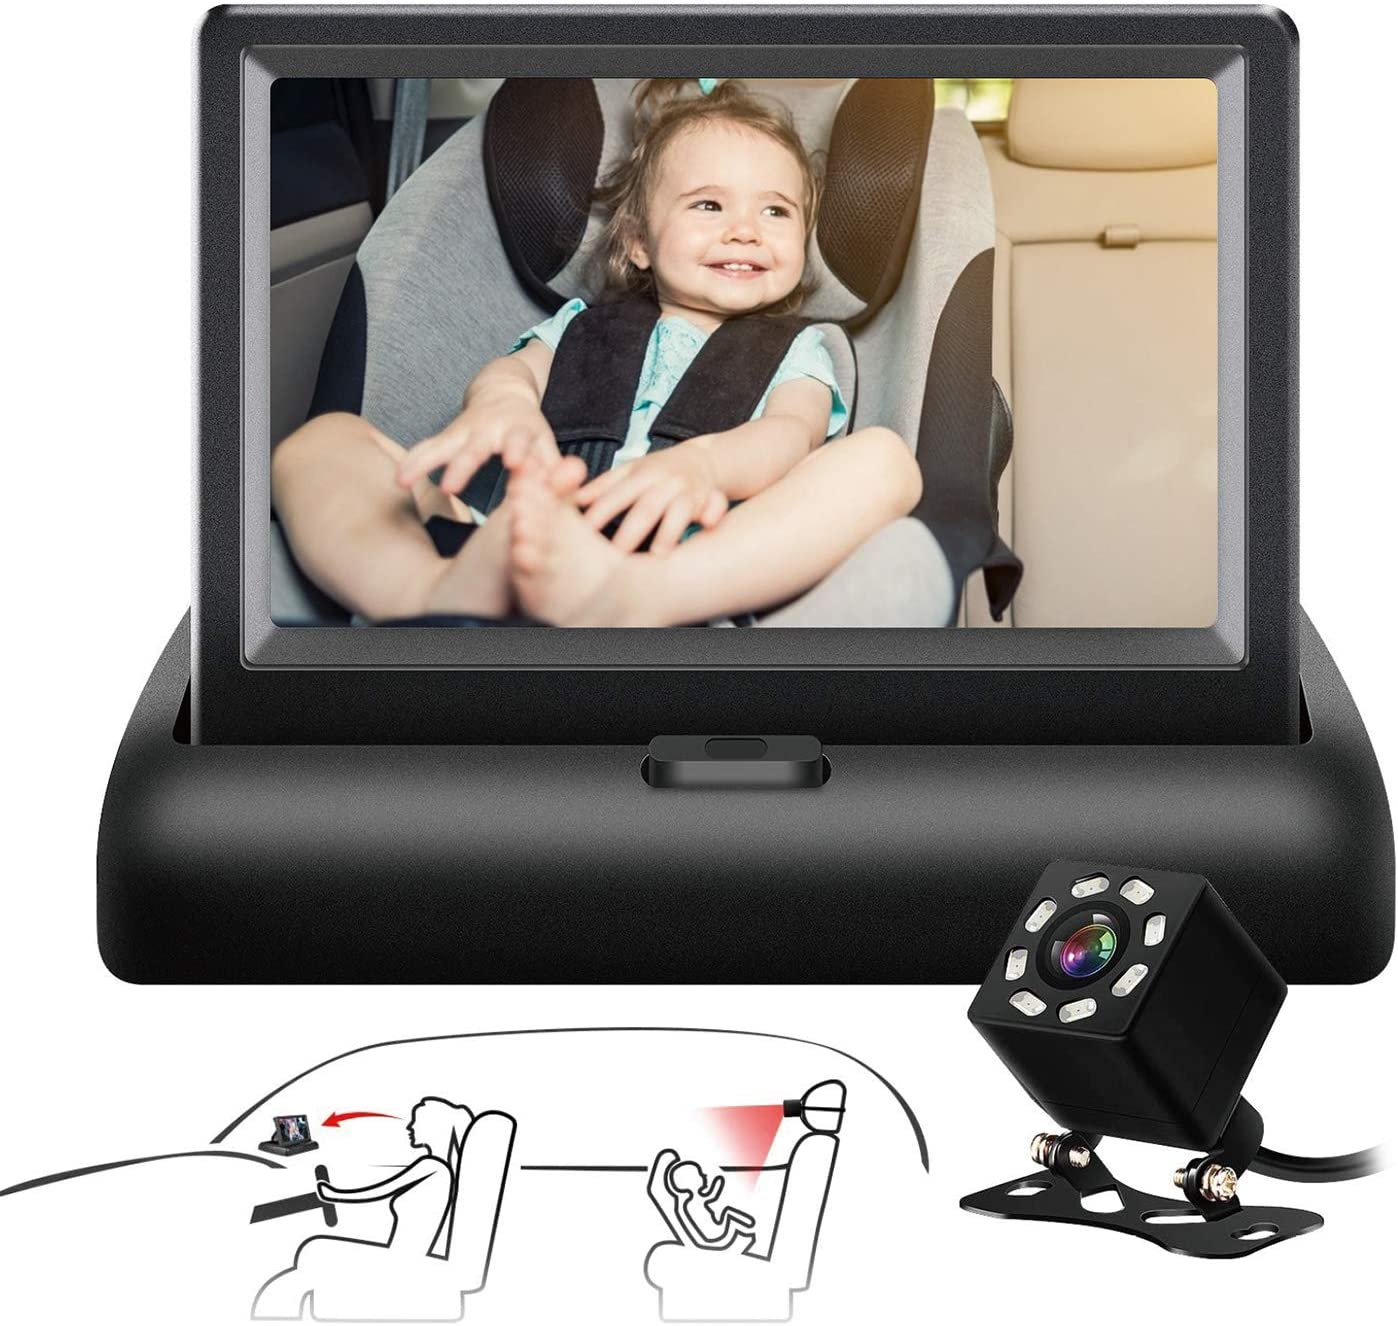 VEKOOTO Baby Car Mirror with Night Vision for Baby Safety Car Seat Rear Facing The 4.3-Inch HD Display Car Baby Monitor with Camera Easy Installtion